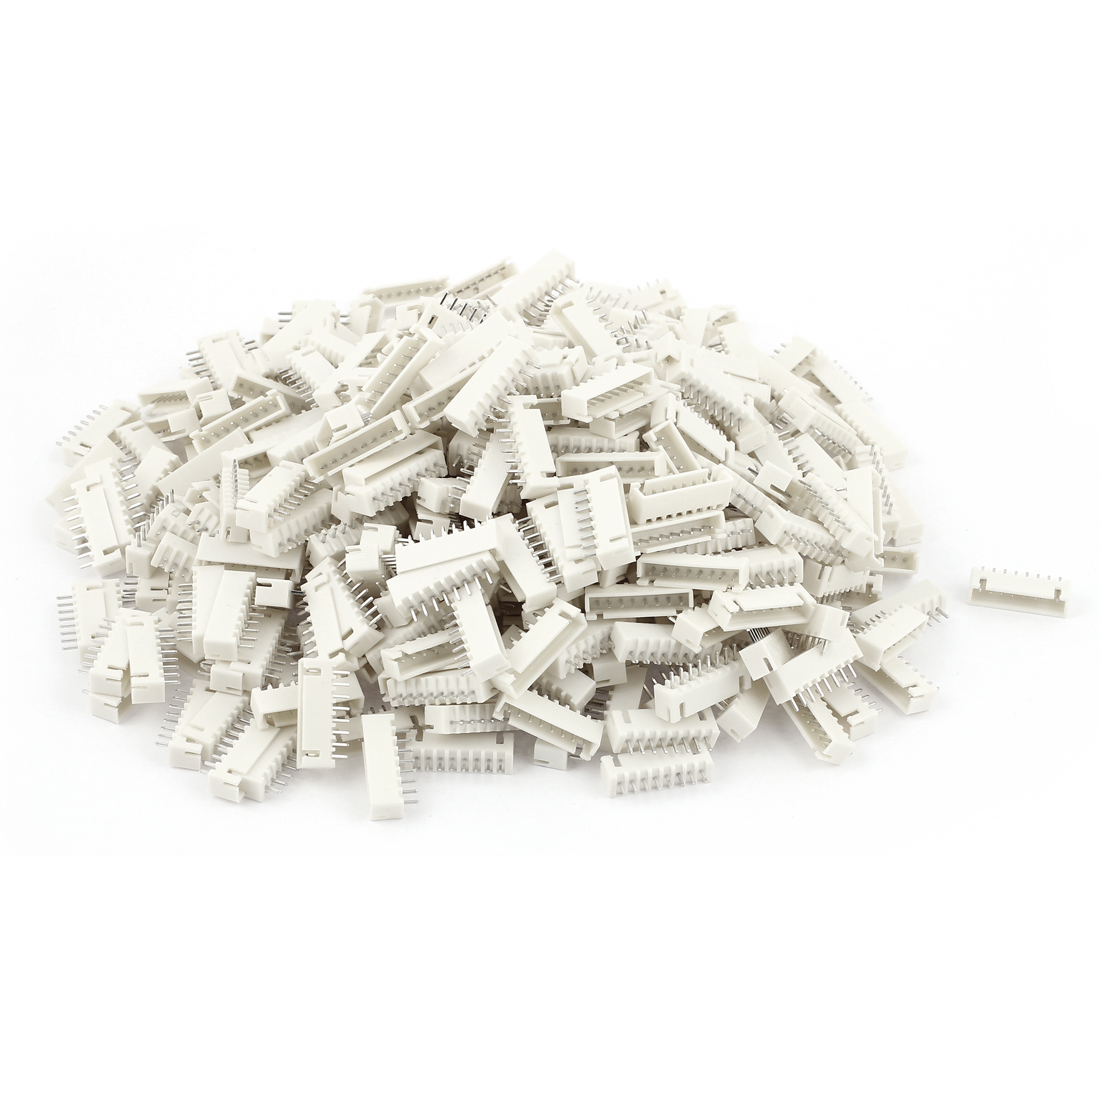 395pcs 2.54mm Pitch Male 8 Pins RC Lipo Battery Balance Connector JST XH Header